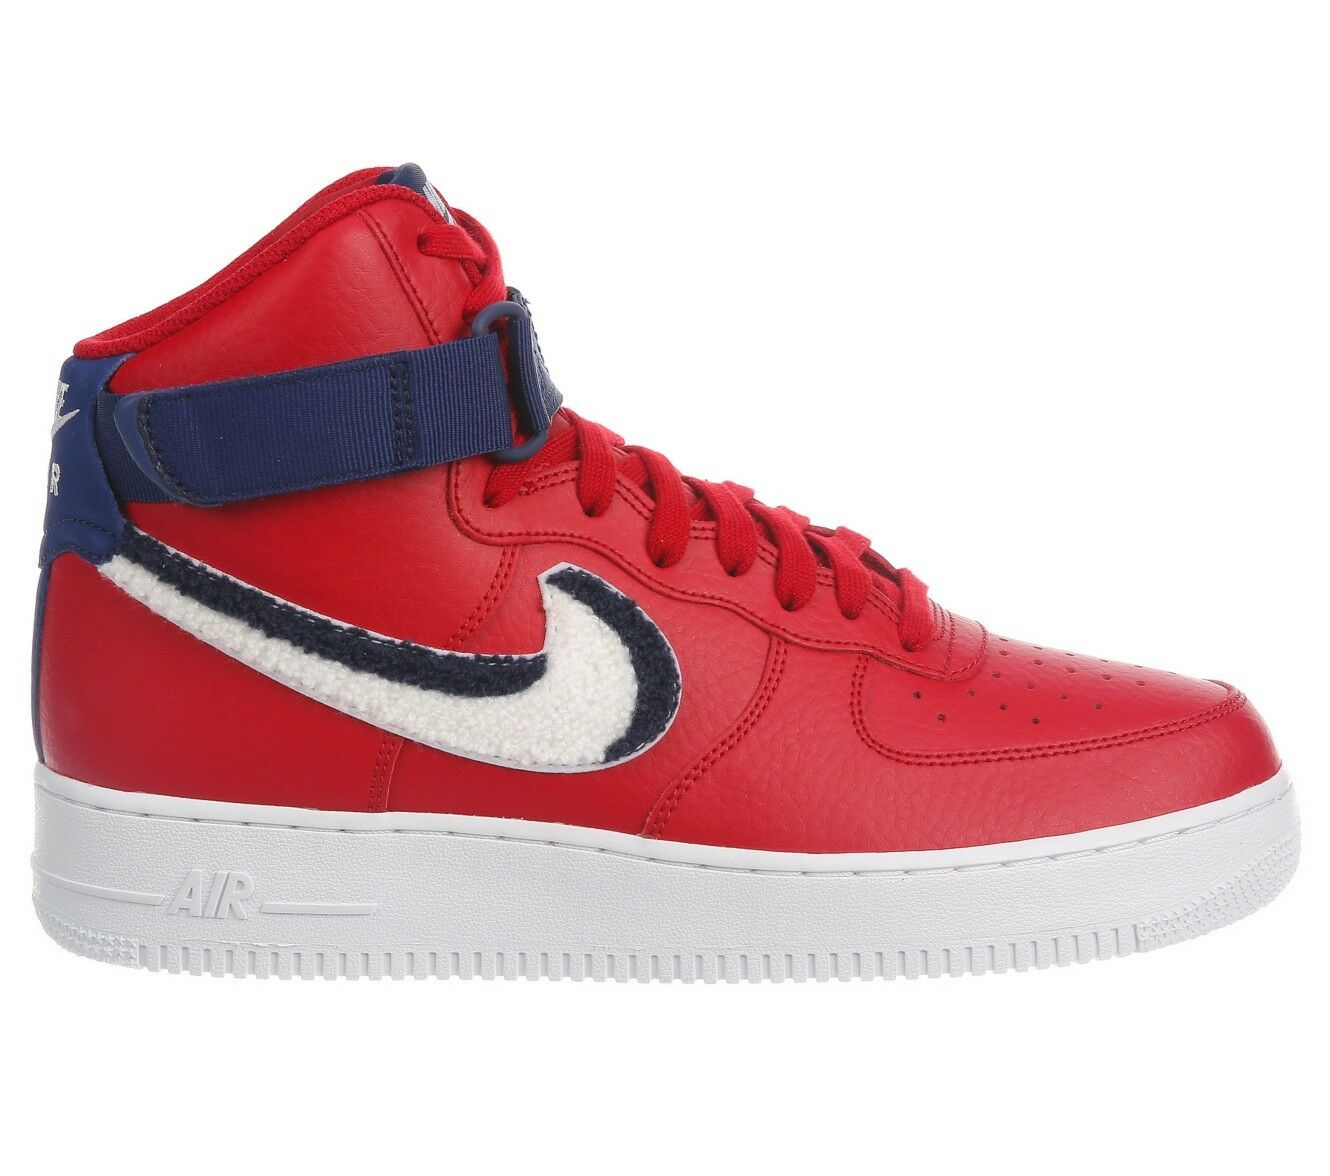 Nike Air Force 1 High '07 LV8 Varsity Mens 806403-603 Red Blue Shoes Comfortable The most popular shoes for men and women